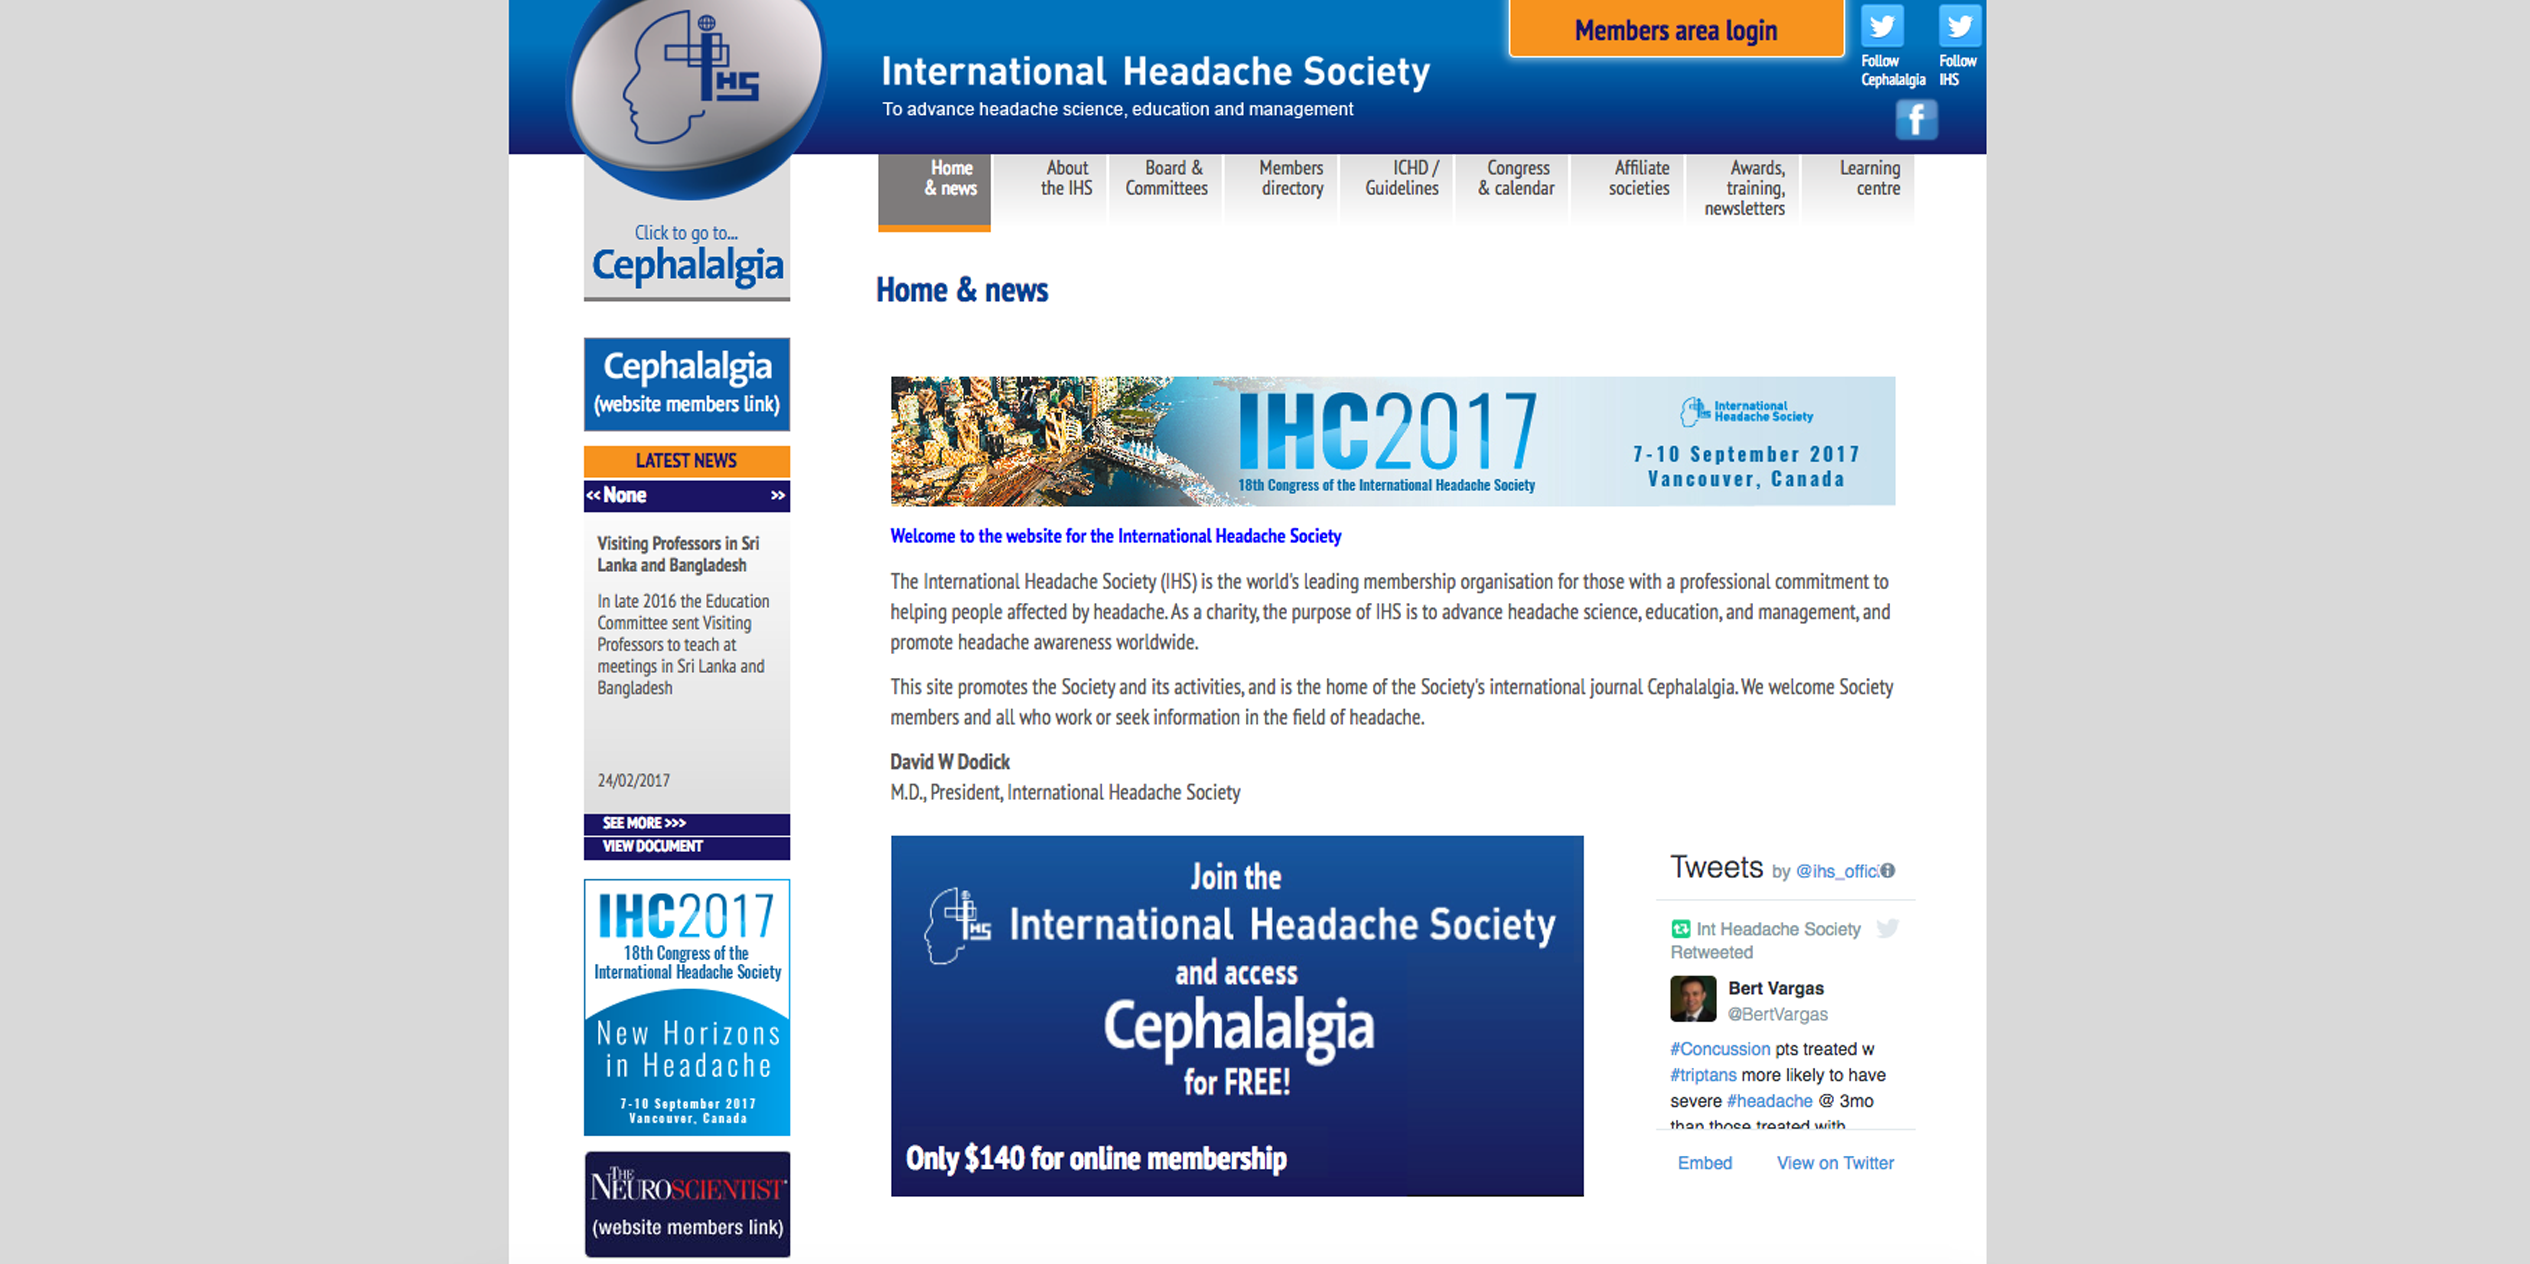 Image of International Headache Society website